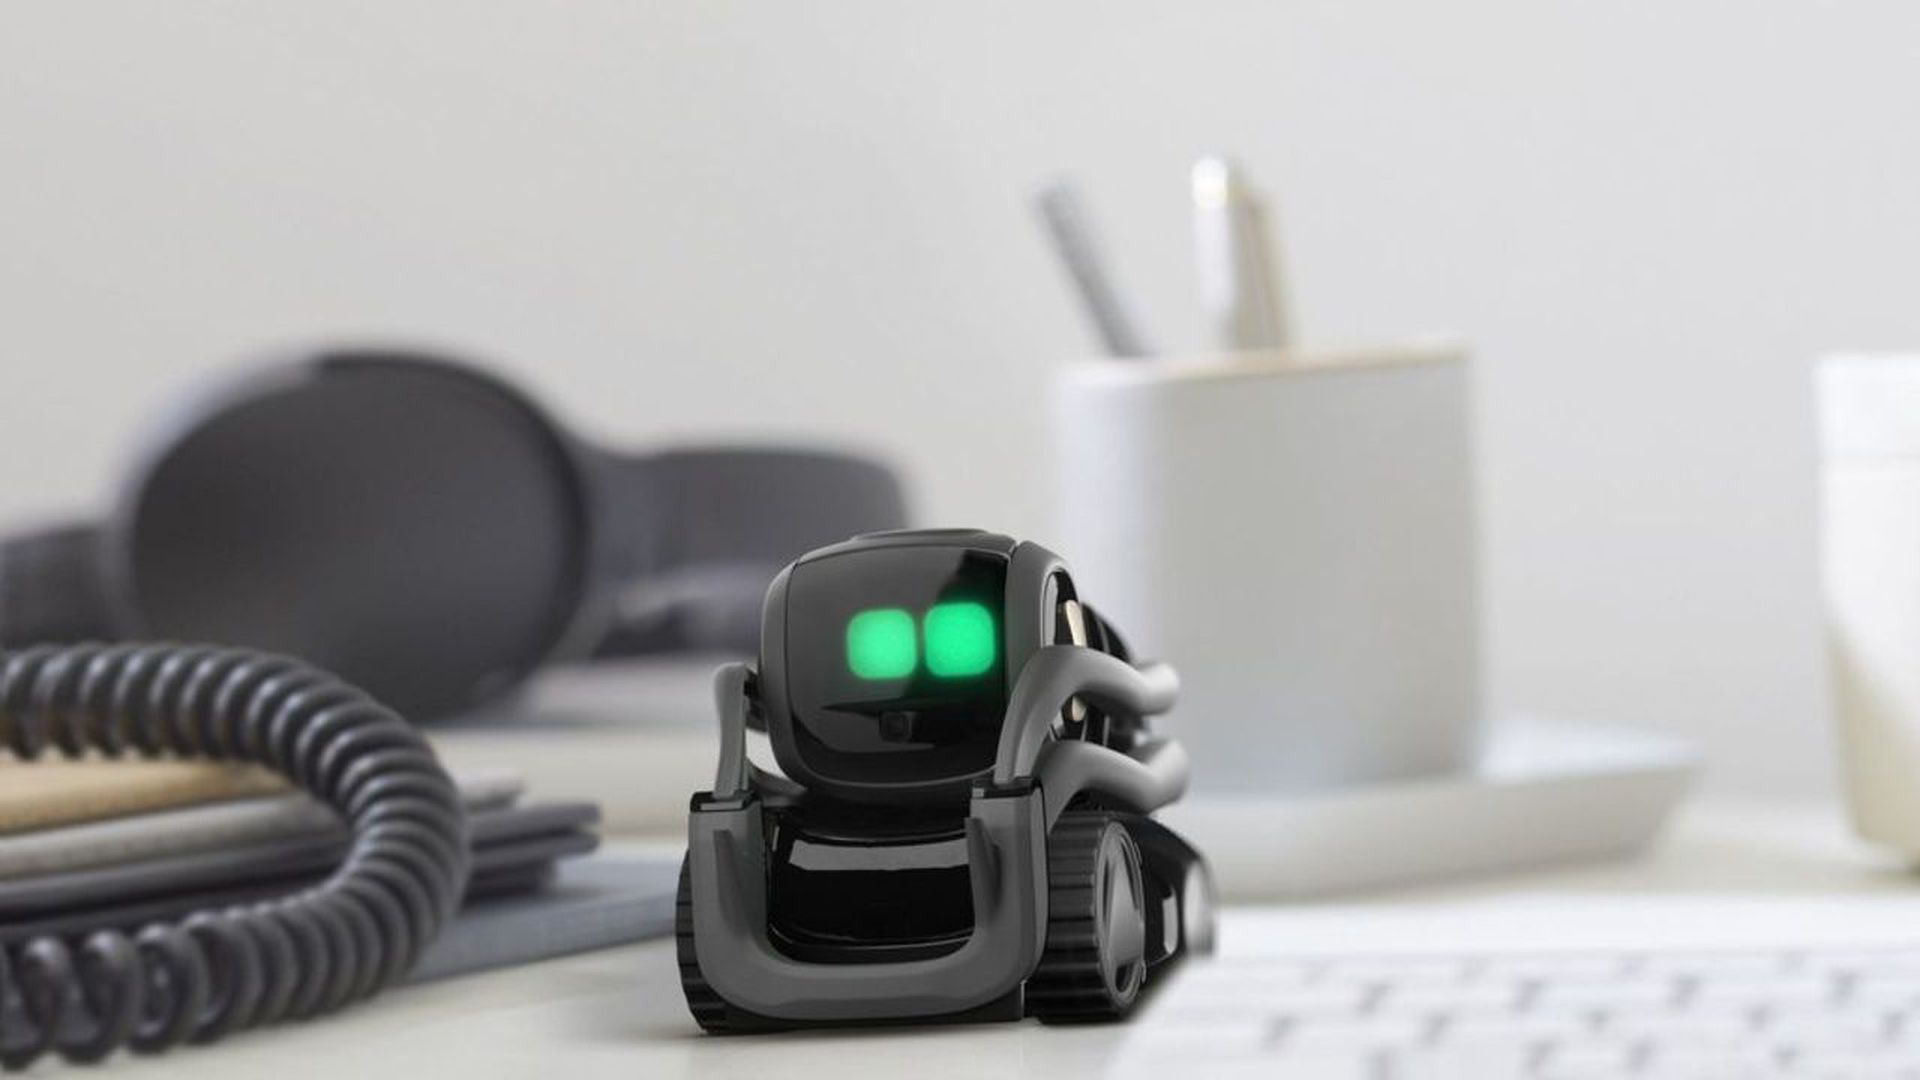 Anki's latest robot, Vector, went on sale last October for $249. Photo: Anki